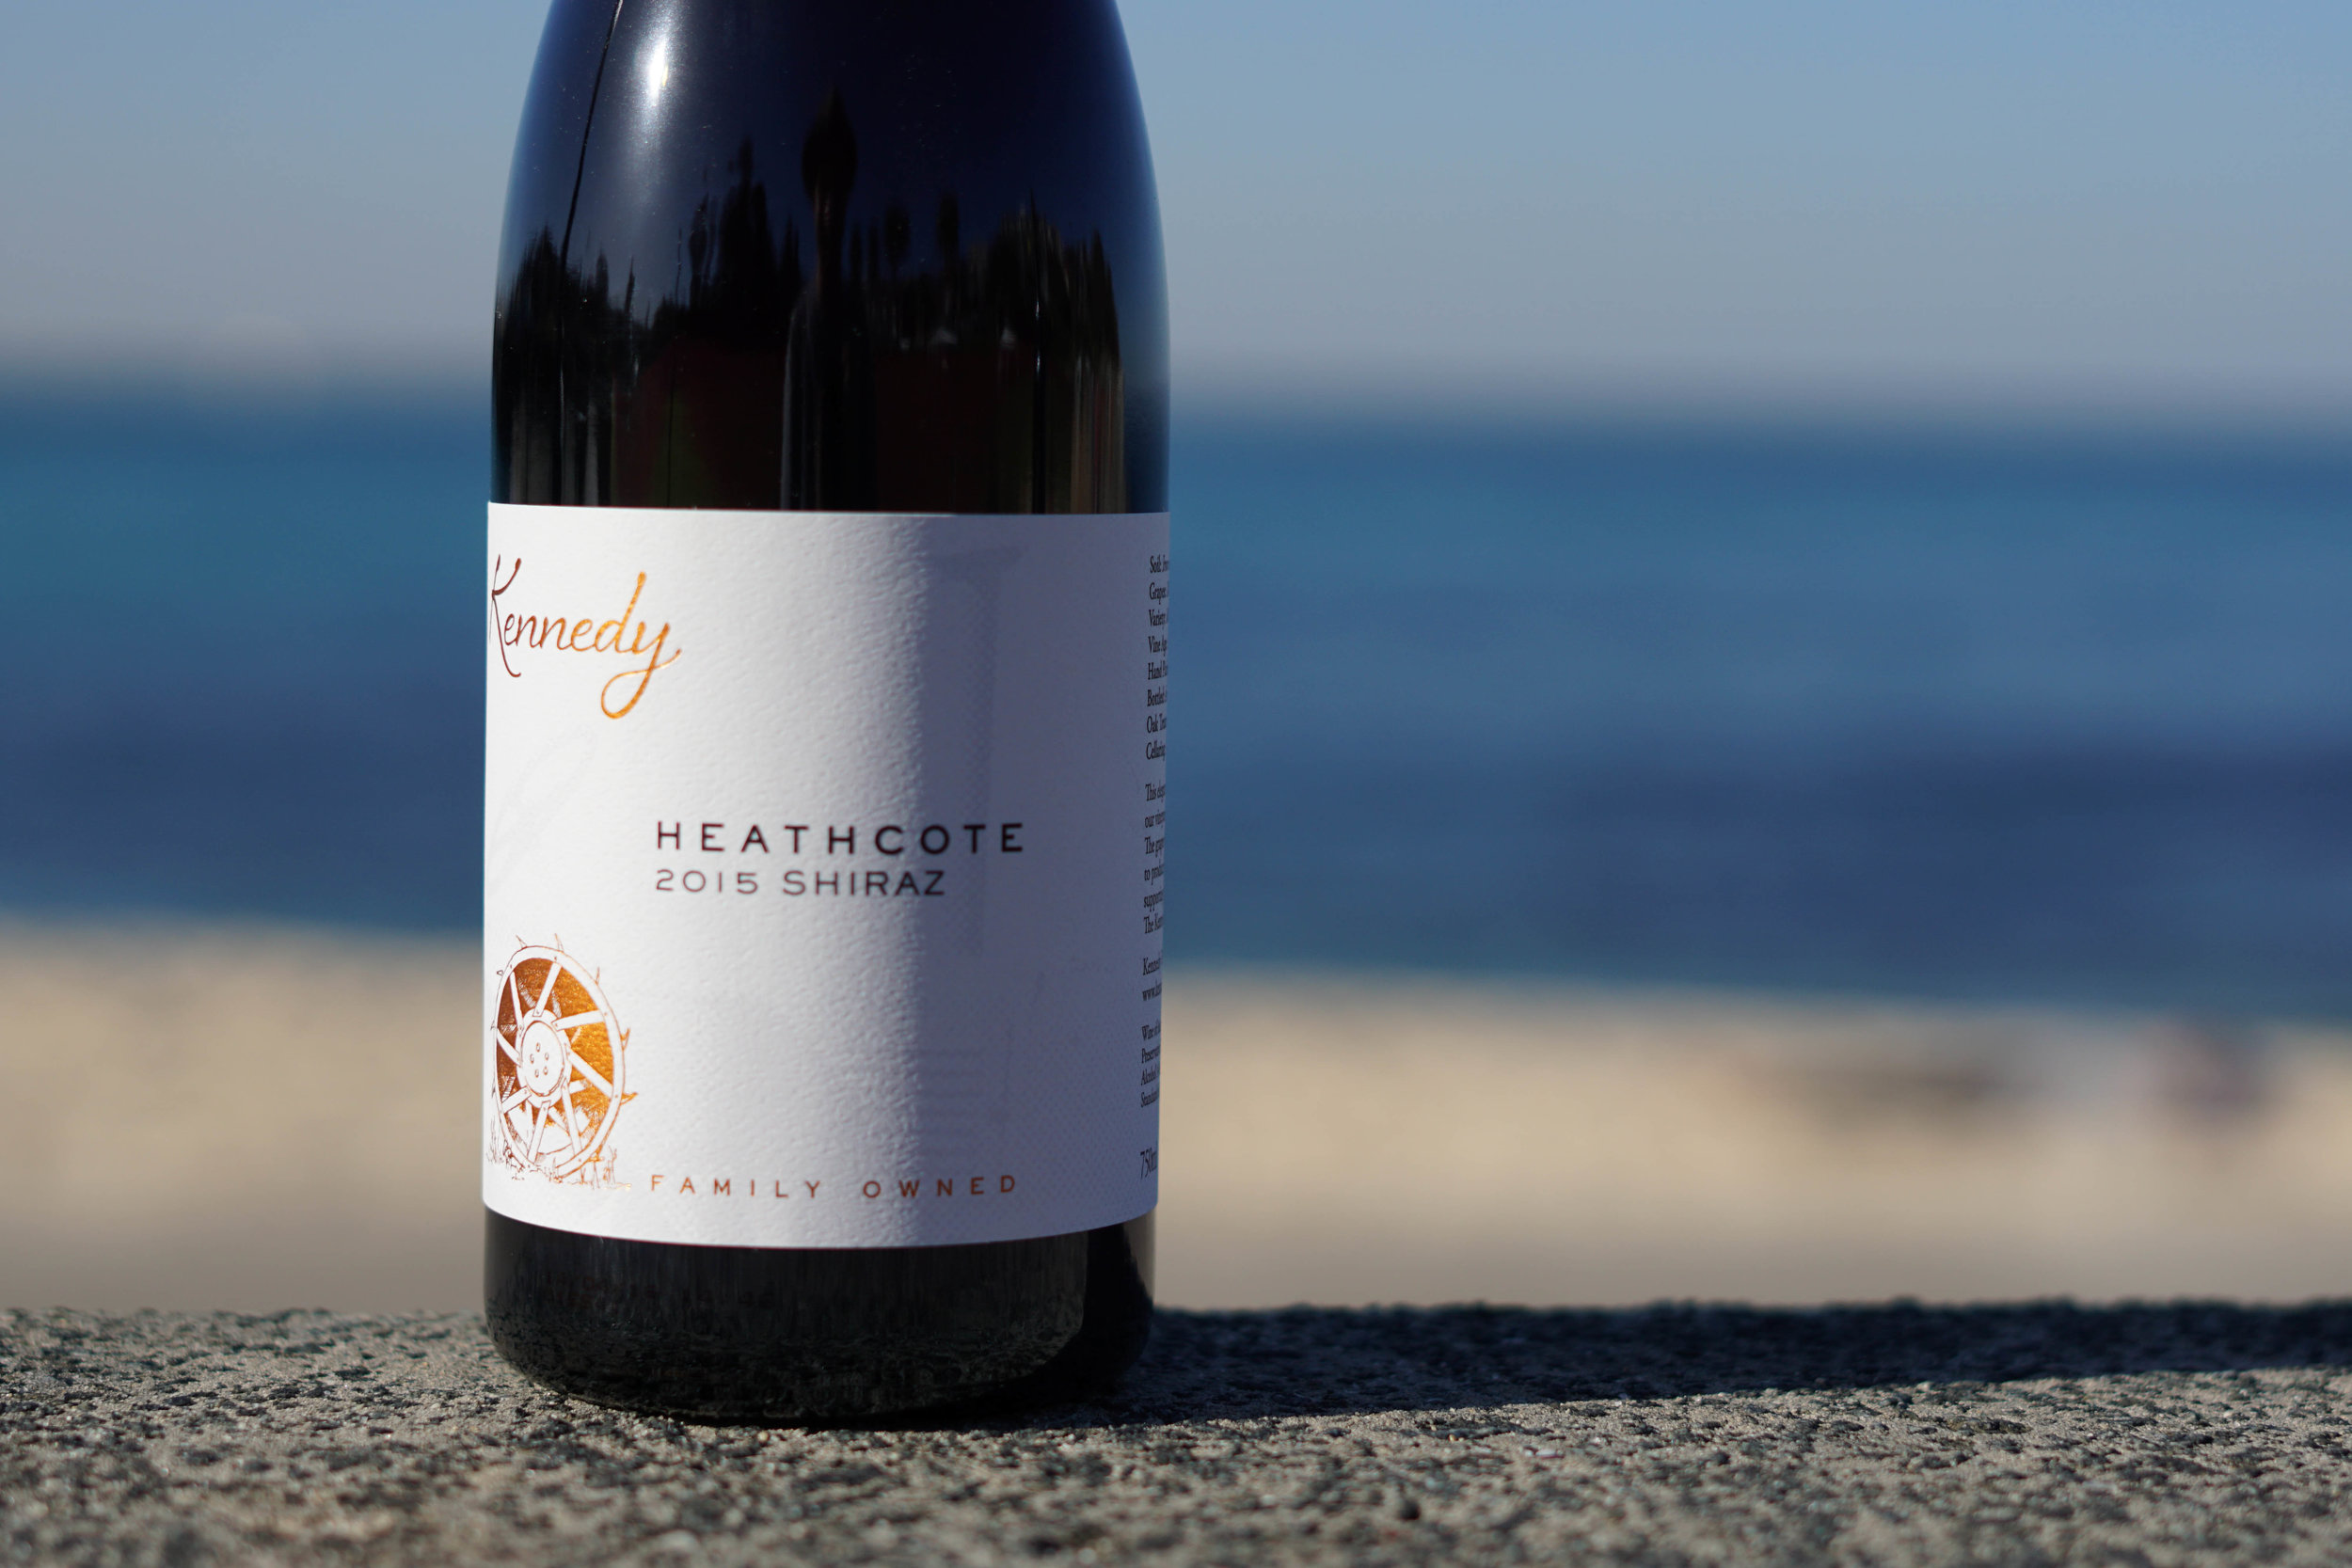 2015 Kennedy Heathcote Shiraz   100% Shiraz 2T/acre    Handpicked as bunches at 240m elevation on Cambrian soils (Iron rich with jasper, chert, seafloor basalt/greenstone). Shiraz is 70% destemmed whilst the remaining 30% remains as wholebunches, the fruit undergoes 4 days of cold soak before wild fermentation commences in open top stainless steel vessels for a total of 7 days. Gentle pumpovers occur once daily for first 2-3 days followed by hand plunging until pressing   The wine remains on skins for a total of 18 days before being pressed to a combination of old French oak and 15% new French oak. Here, the resulting wine completes full wild malolactic fermentation and matures on lees for a total of 11 months before it is racked and blended to bottle.  Unfined, unfiltered and 50mg/l SO2 added.